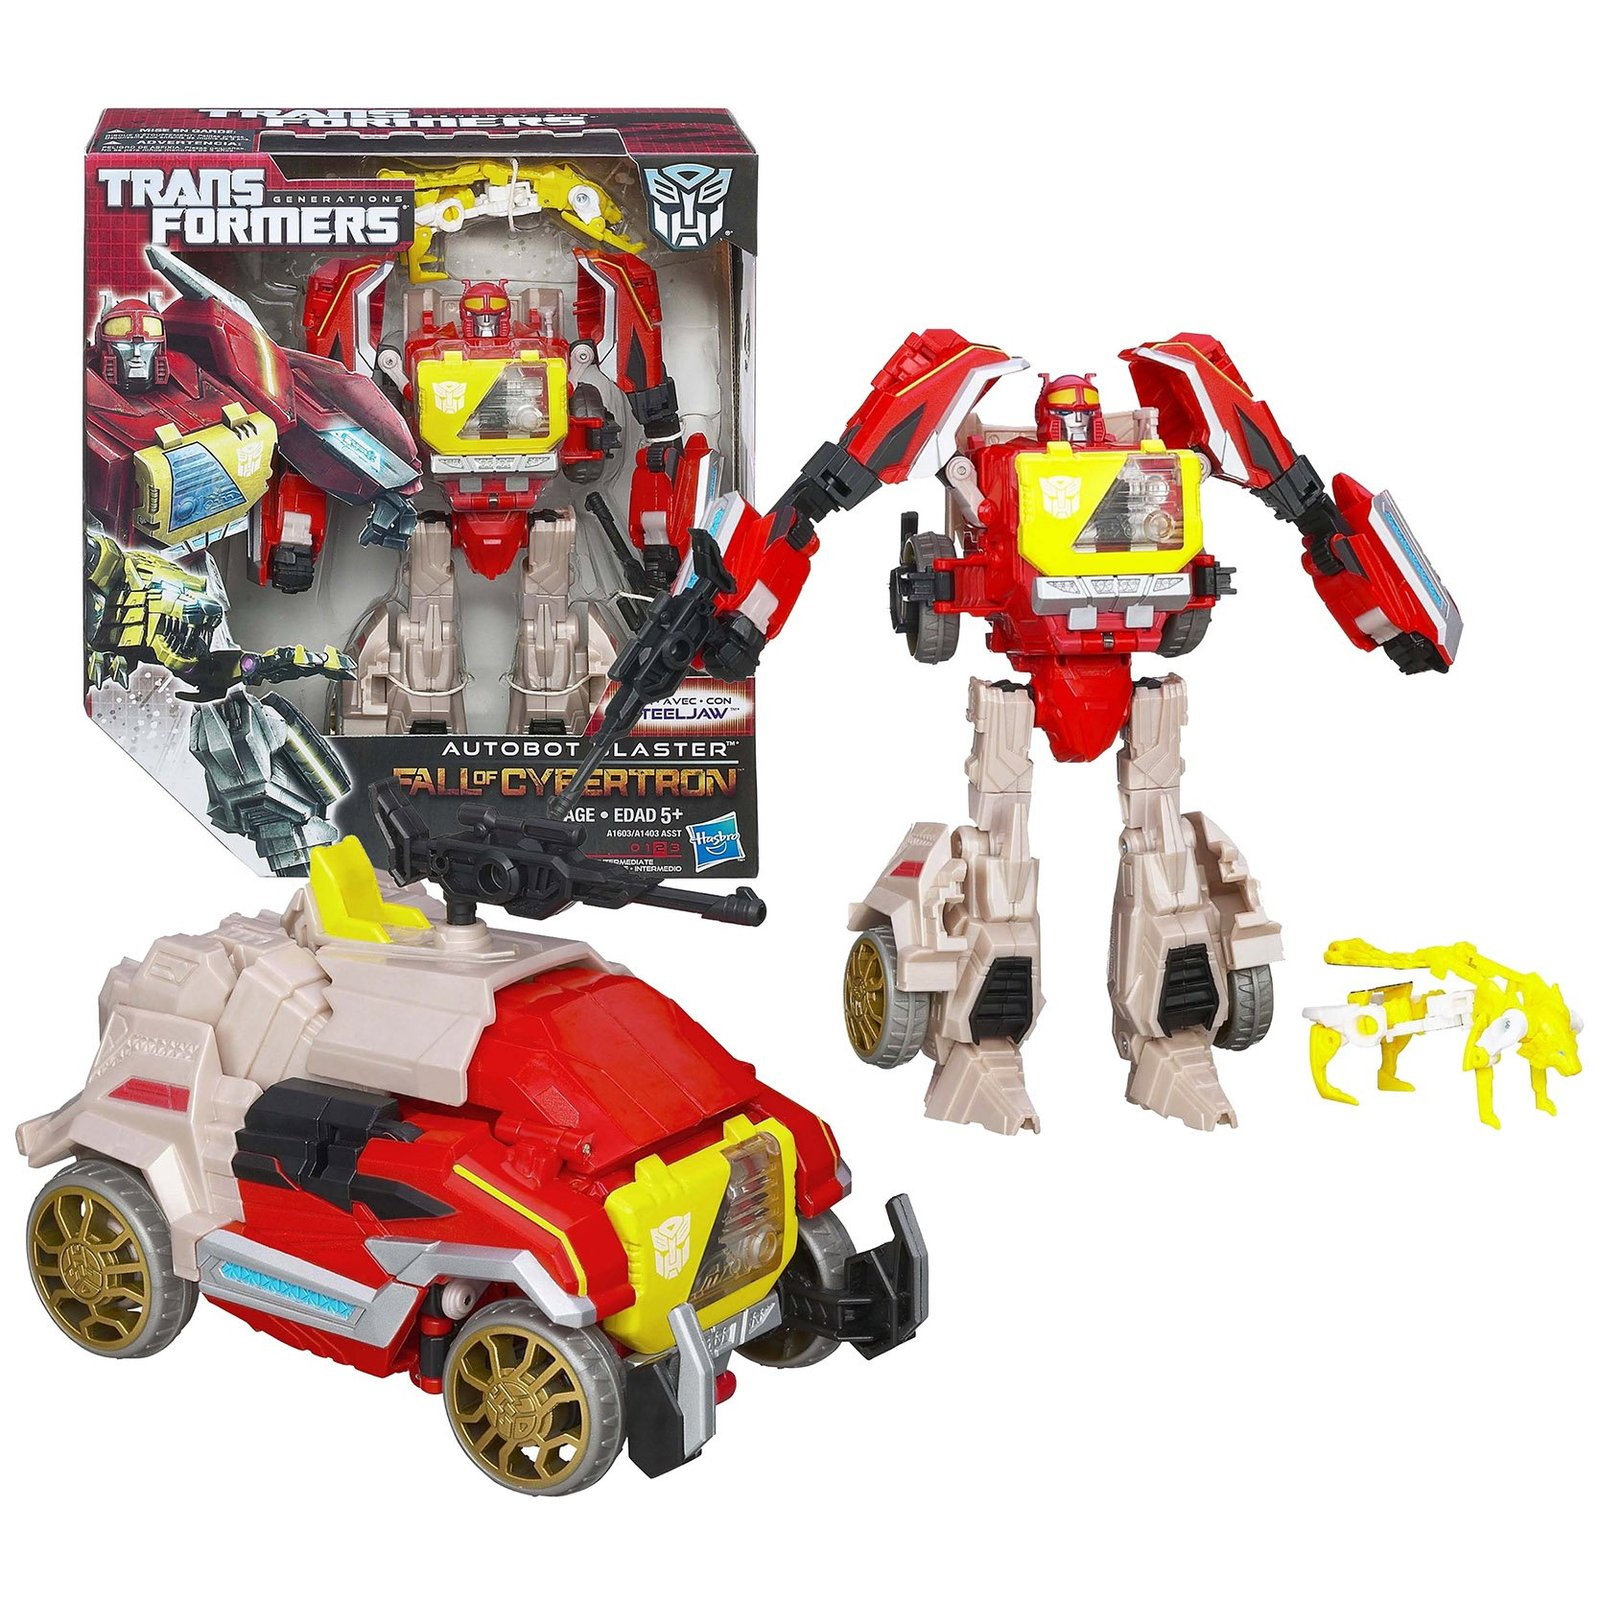 Transformers Year 2012 Generations Fall of Cybertron Series Voyager Class 7-1/2